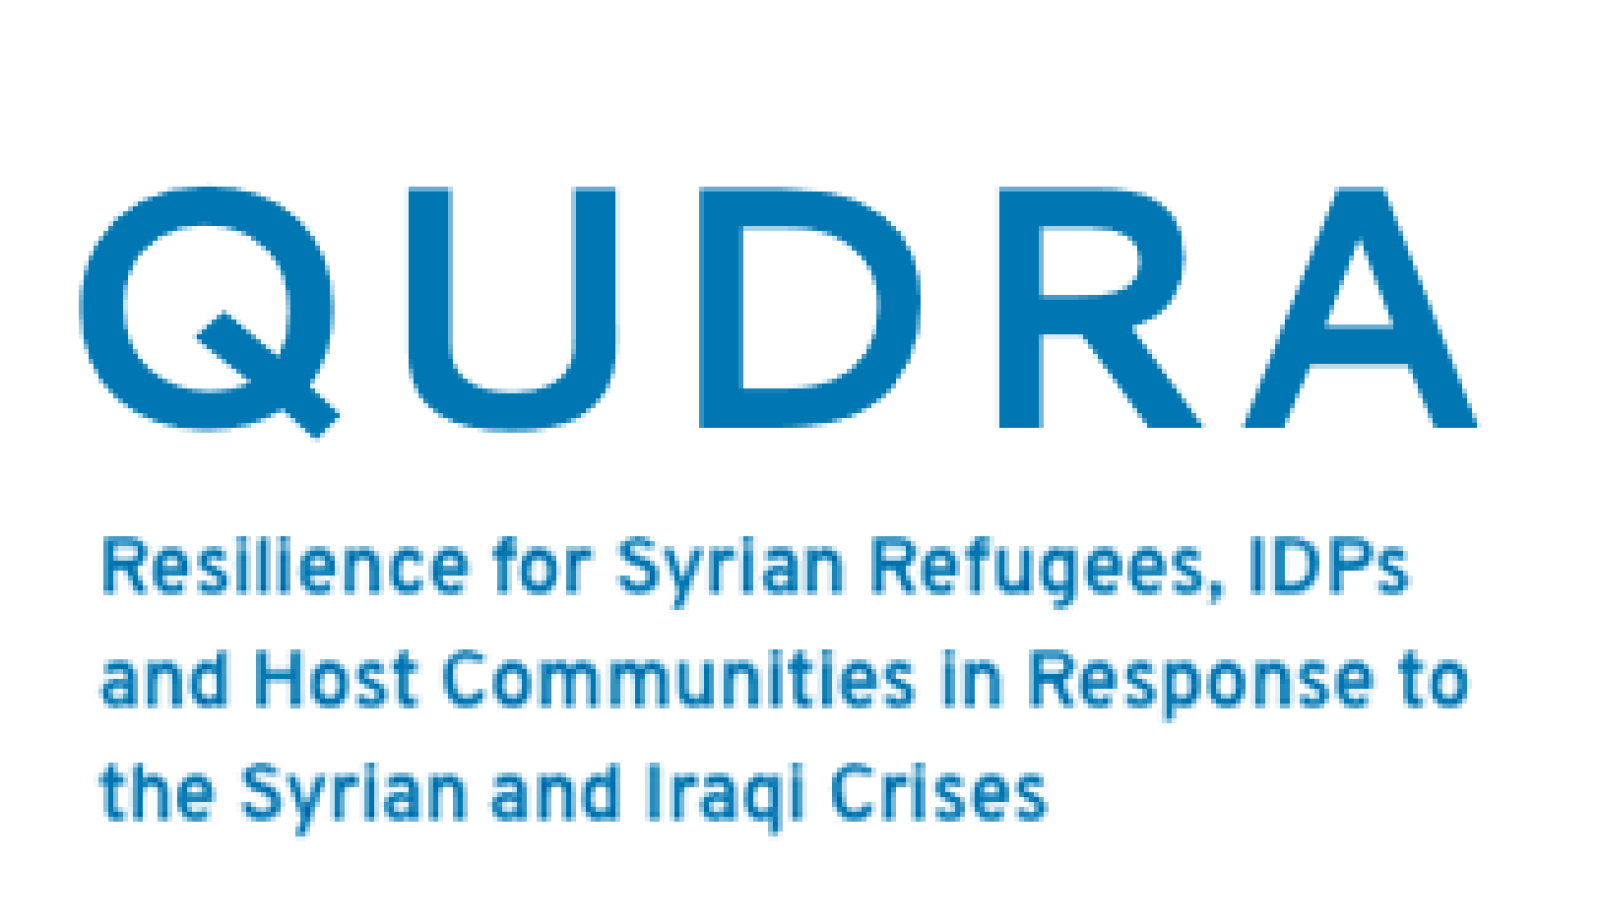 Jordan: EU-funded Qudra programme promotes art projects to reduce tension between communities